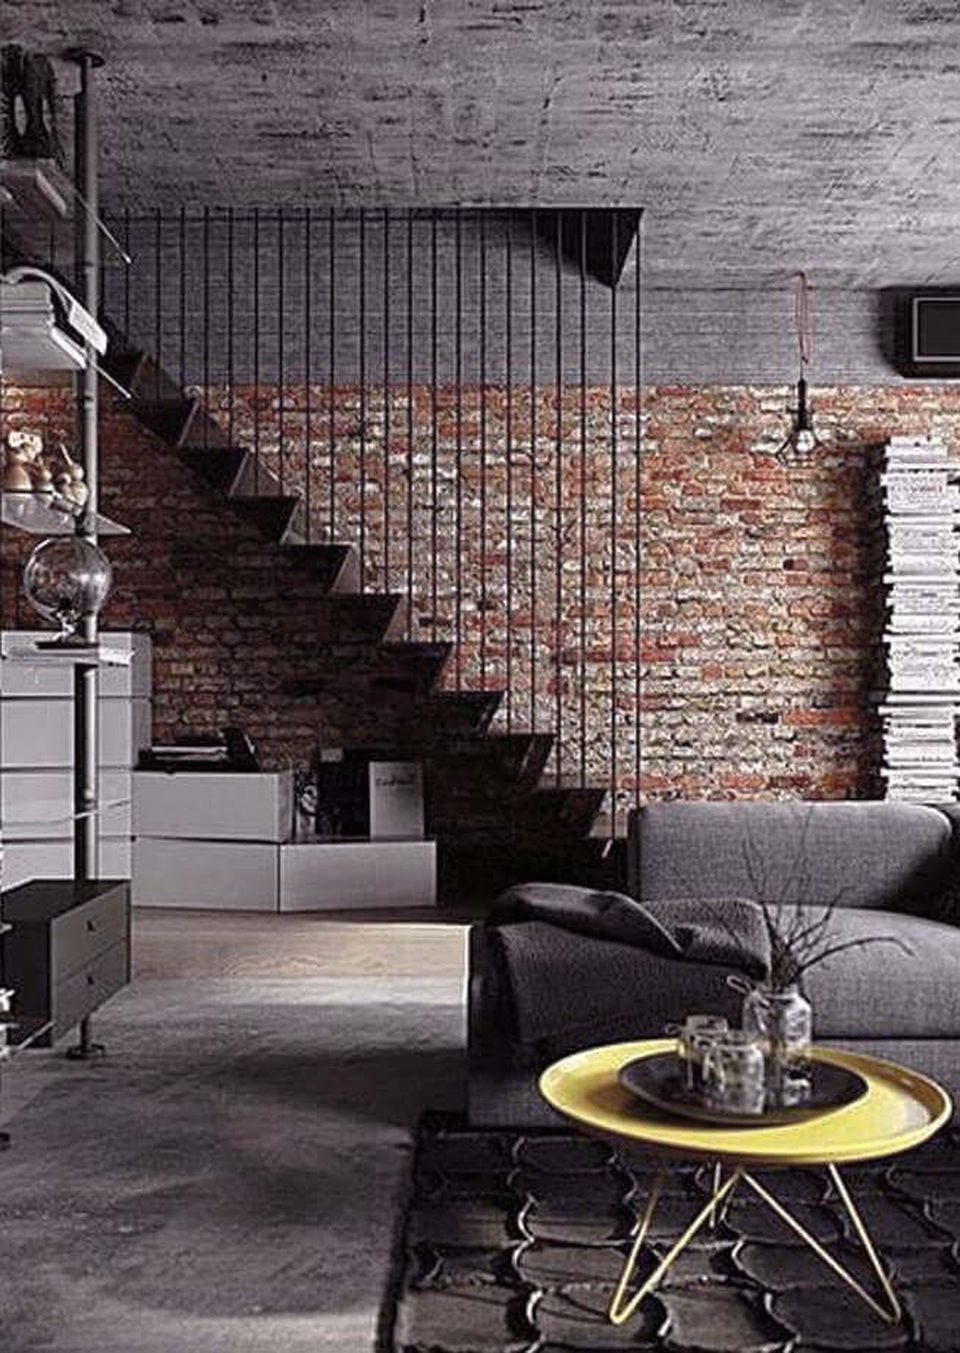 Urban Home Interior Decor Ideas 1